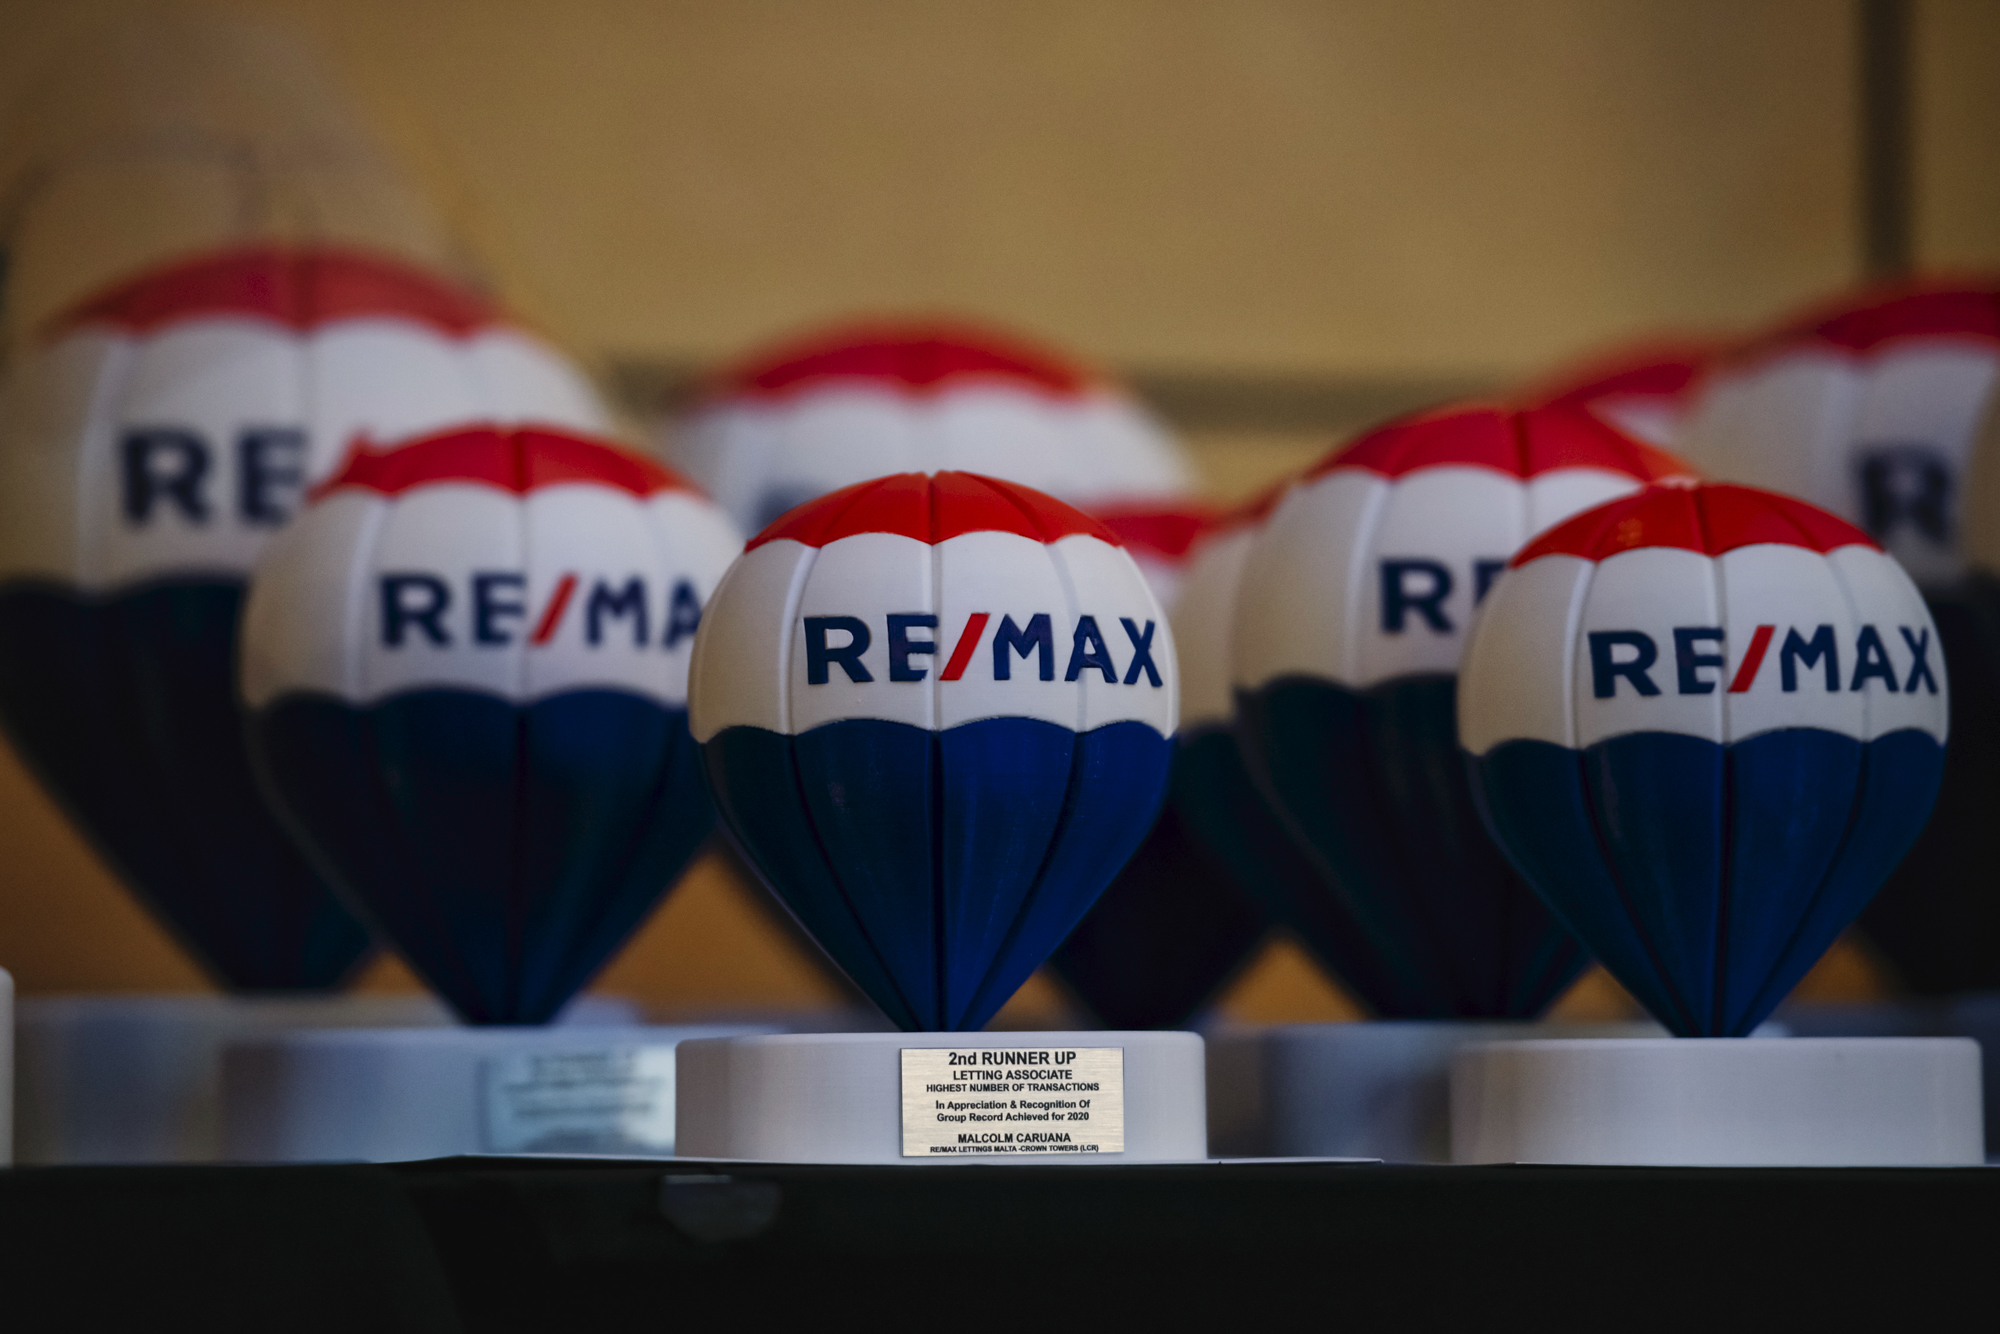 remax trophy awards agm 2020